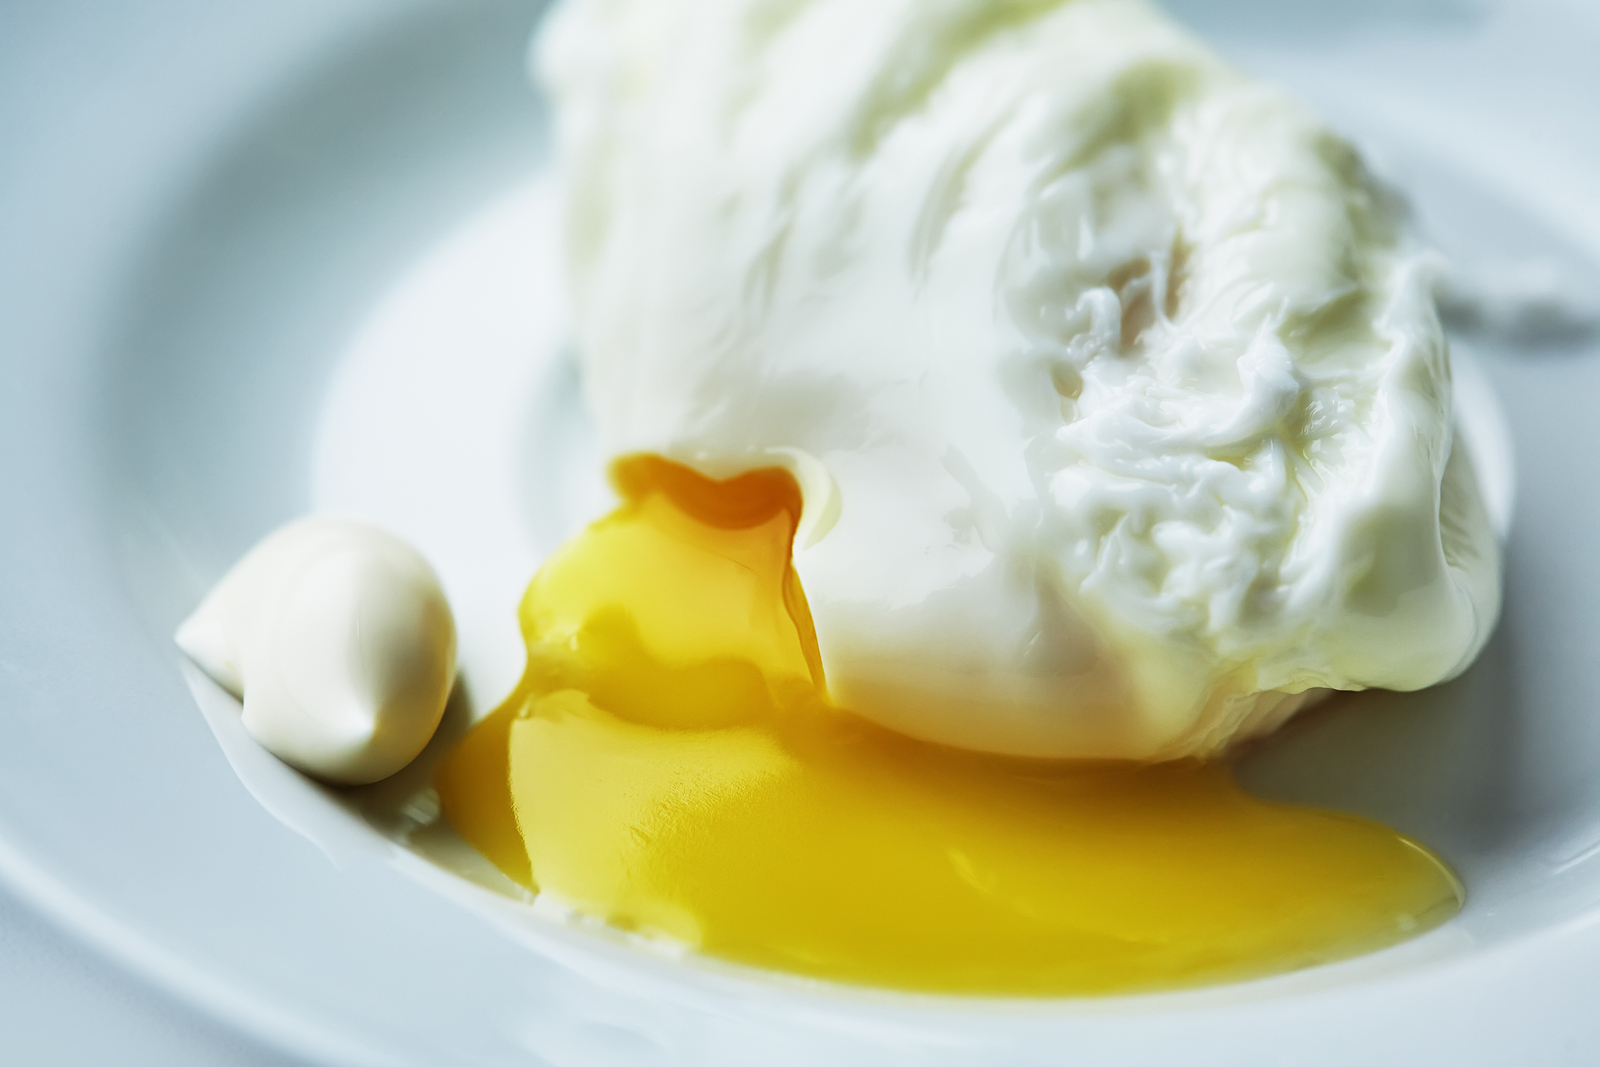 The liquid yolk flows from the poached egg onto a white plate